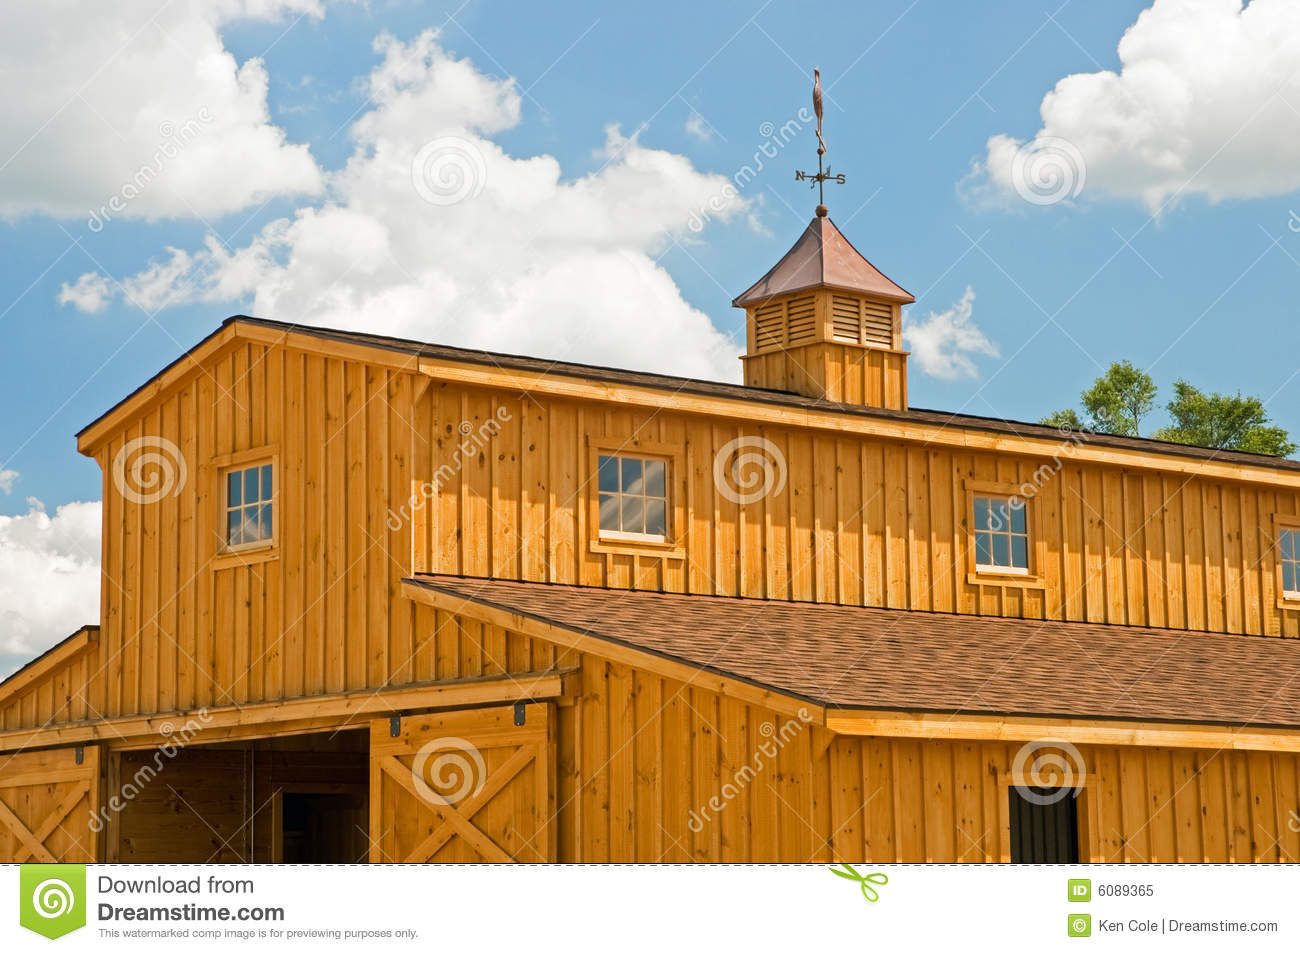 view of a new wooden farm barn with weather vane on top of a cupola.